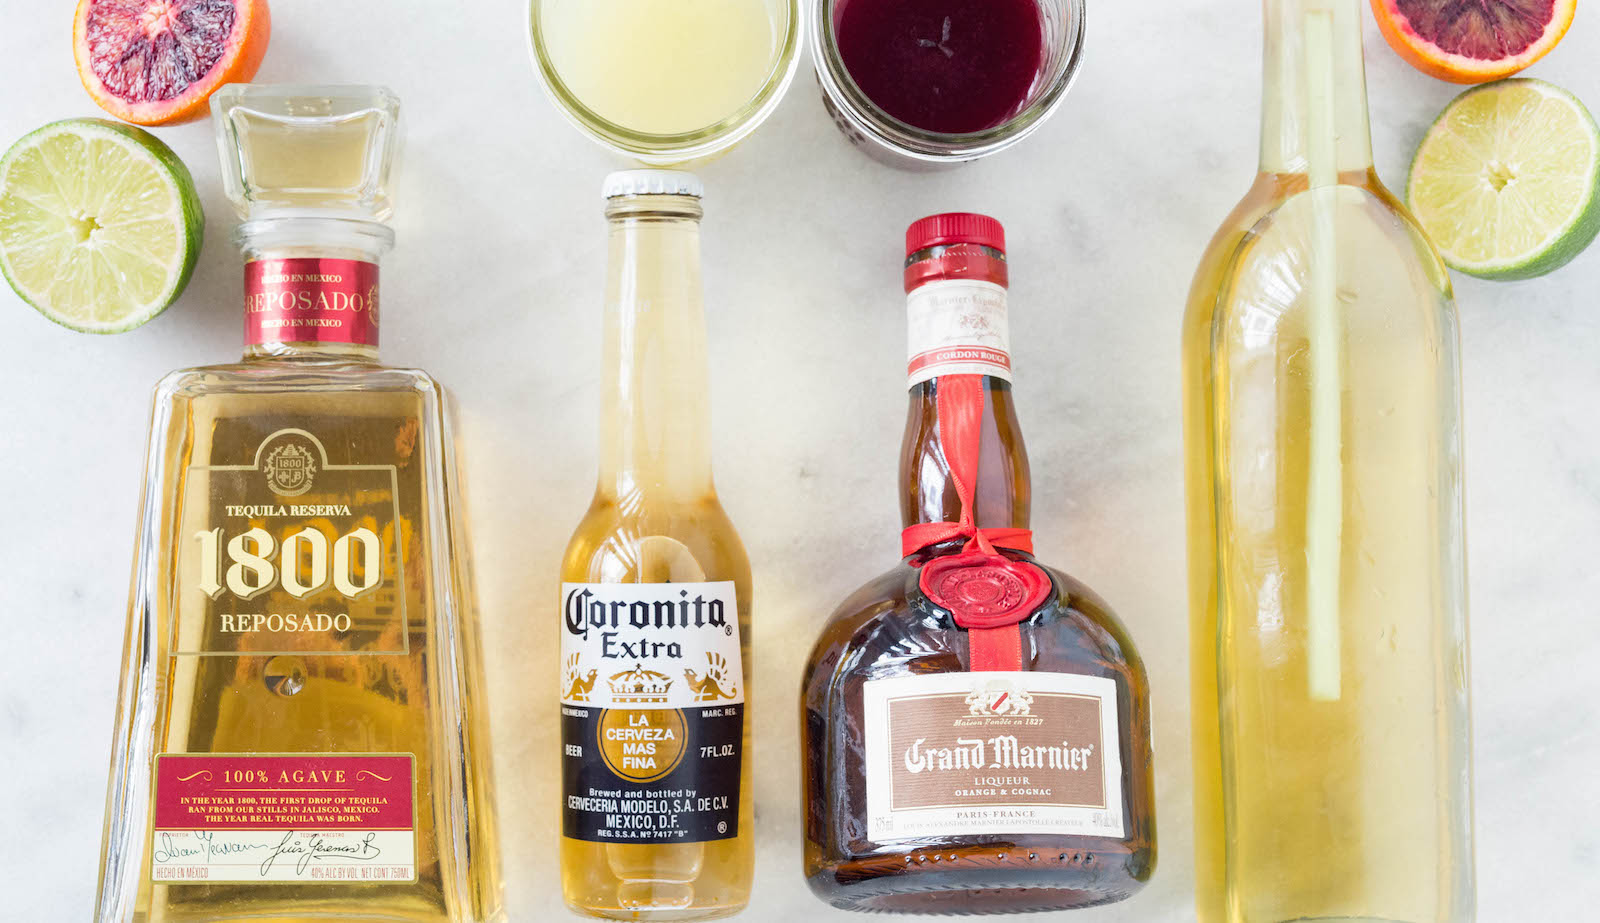 All the ingredients to make our Coronarita (Beer Margarita) Recipe: lemon juice, blood orange juice, lemongrass simple syrup, coronita, tequila, and Grand Marnier.